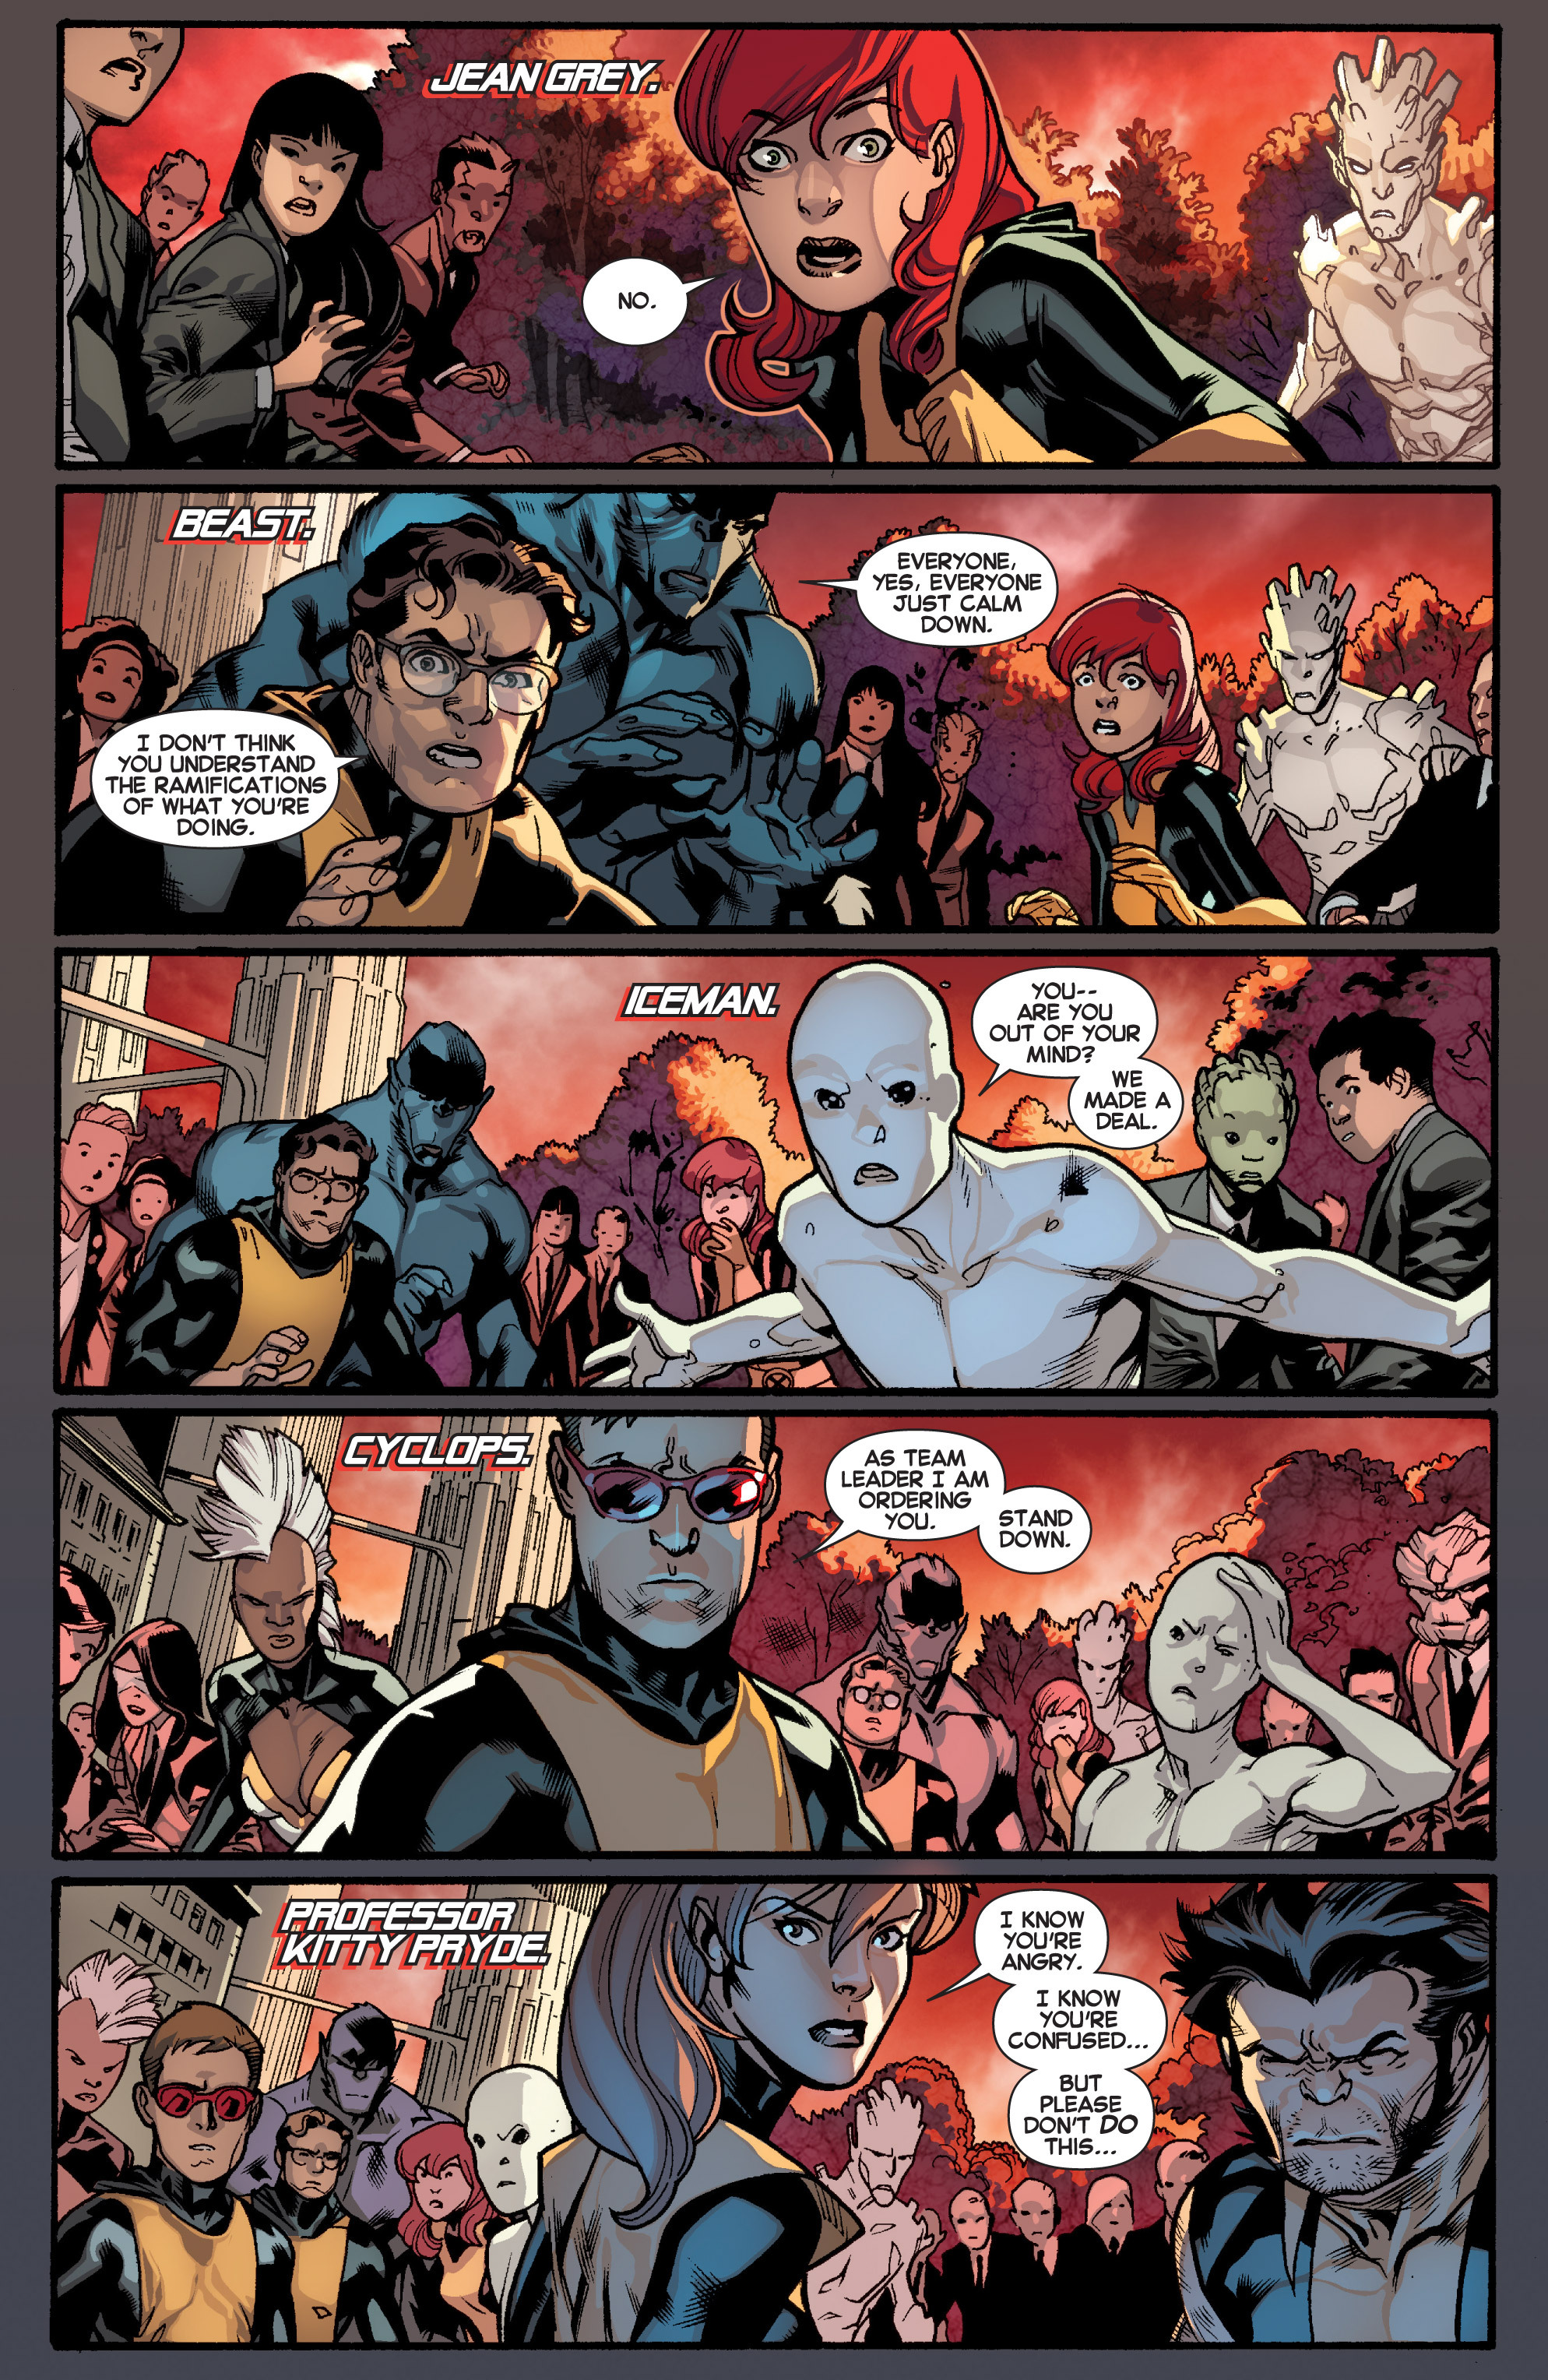 Read online All-New X-Men (2013) comic -  Issue # _Special - Out Of Their Depth - 5